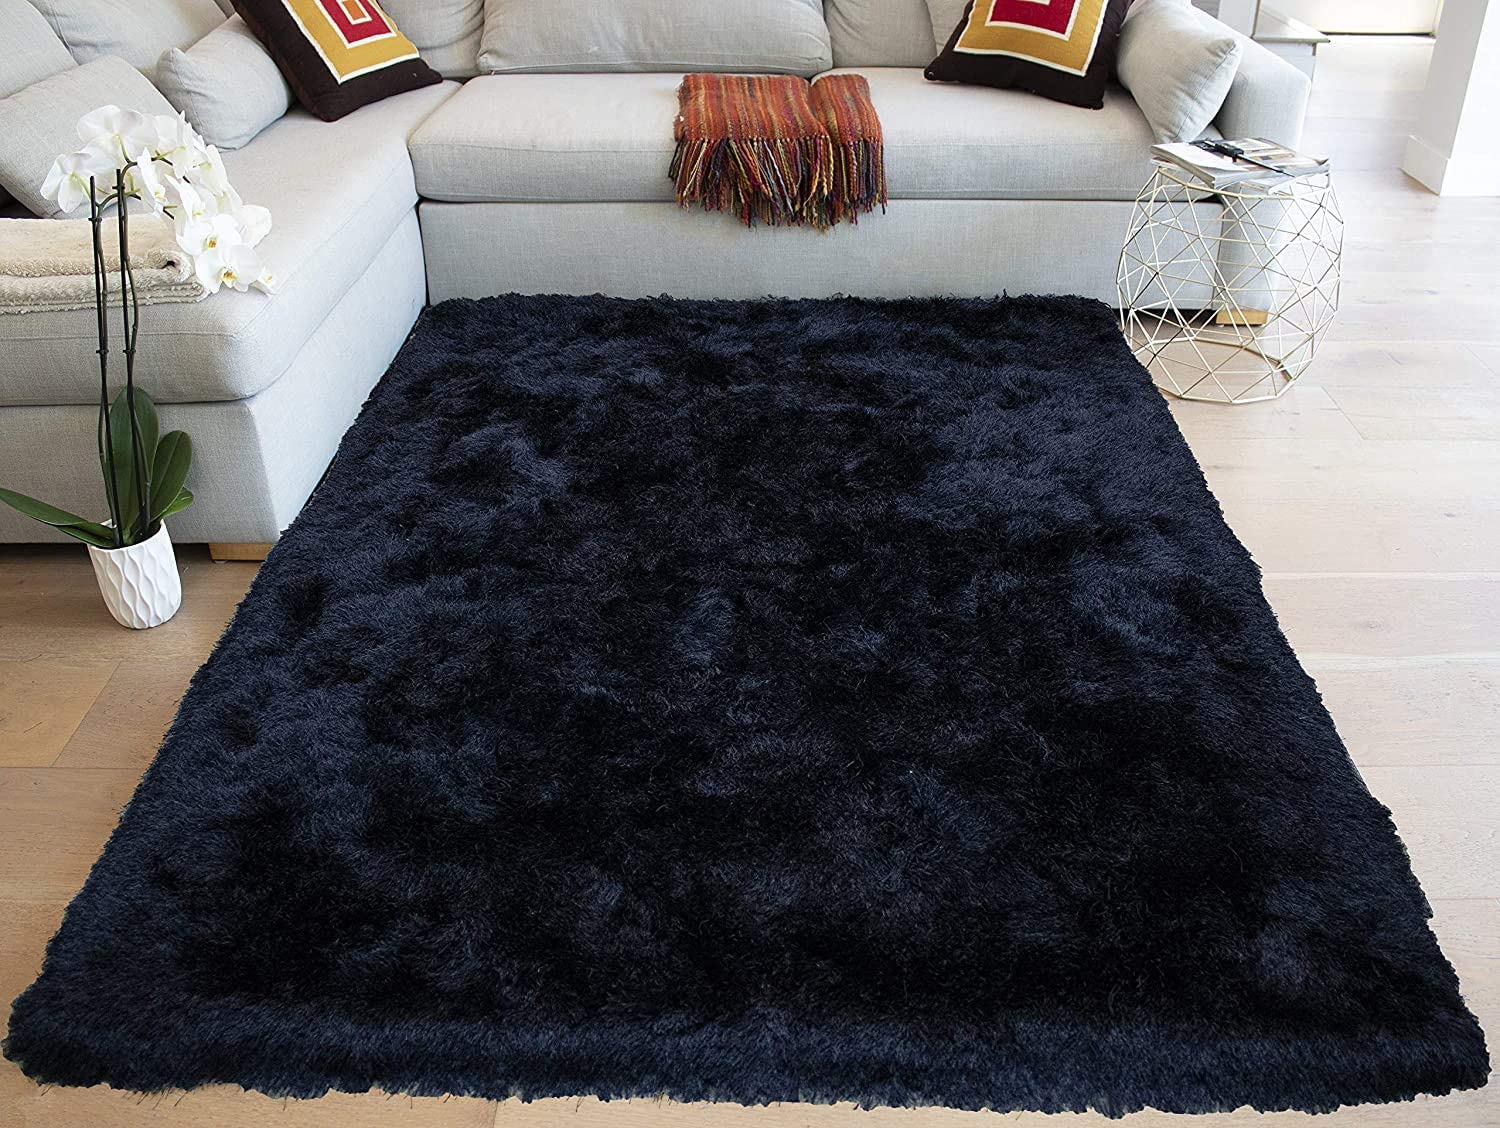 Amazon Com 8x10 Feet Black Crow Dark Night Color Area Rug Carpet Rug Solid Soft Plush Pile Shag Shaggy Fuzzy Furry Modern Contemporary Decorative Designer Bedroom Living Room Hand Woven Non Slip Canvas Backing